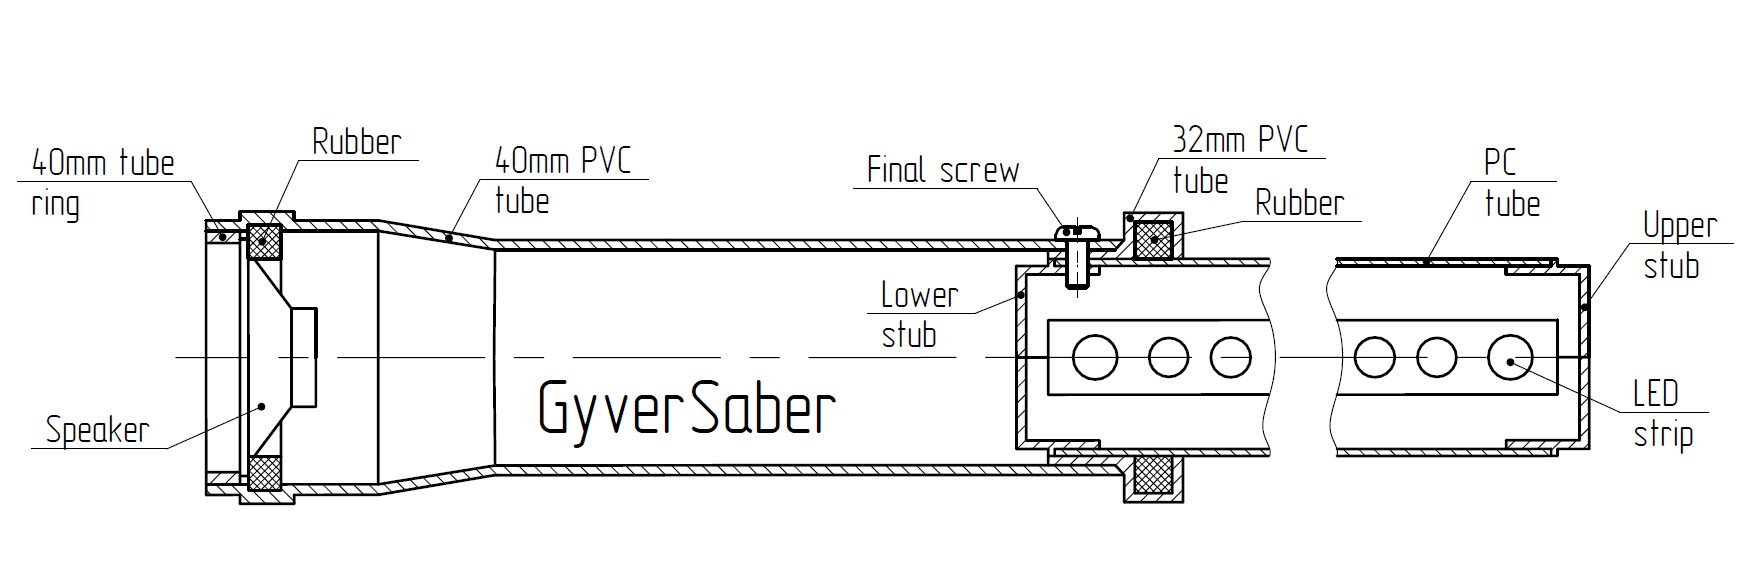 Picture of Final Screw